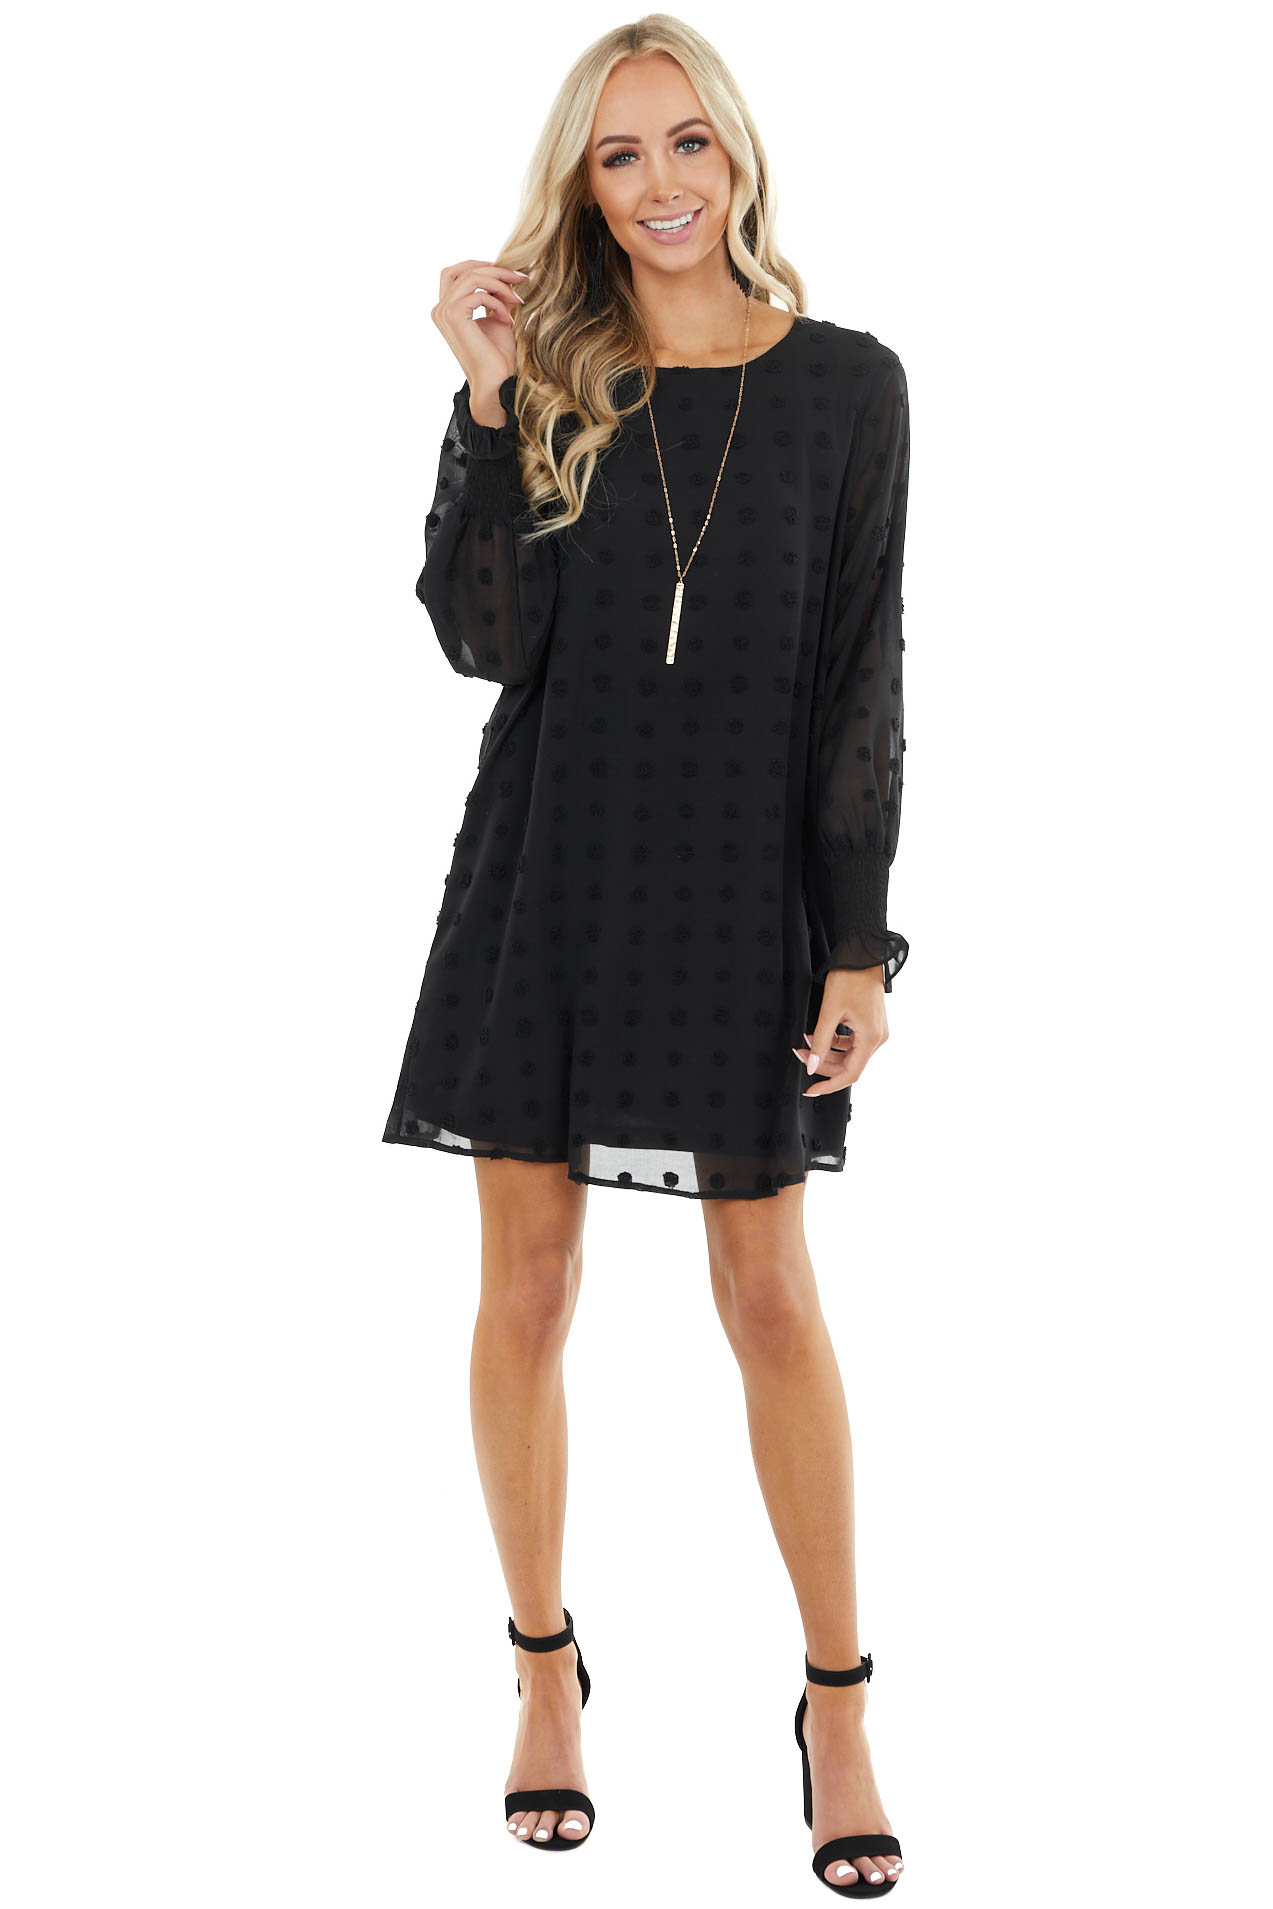 Black Woven Swiss Dot Short Dress with Long Bubble Sleeves